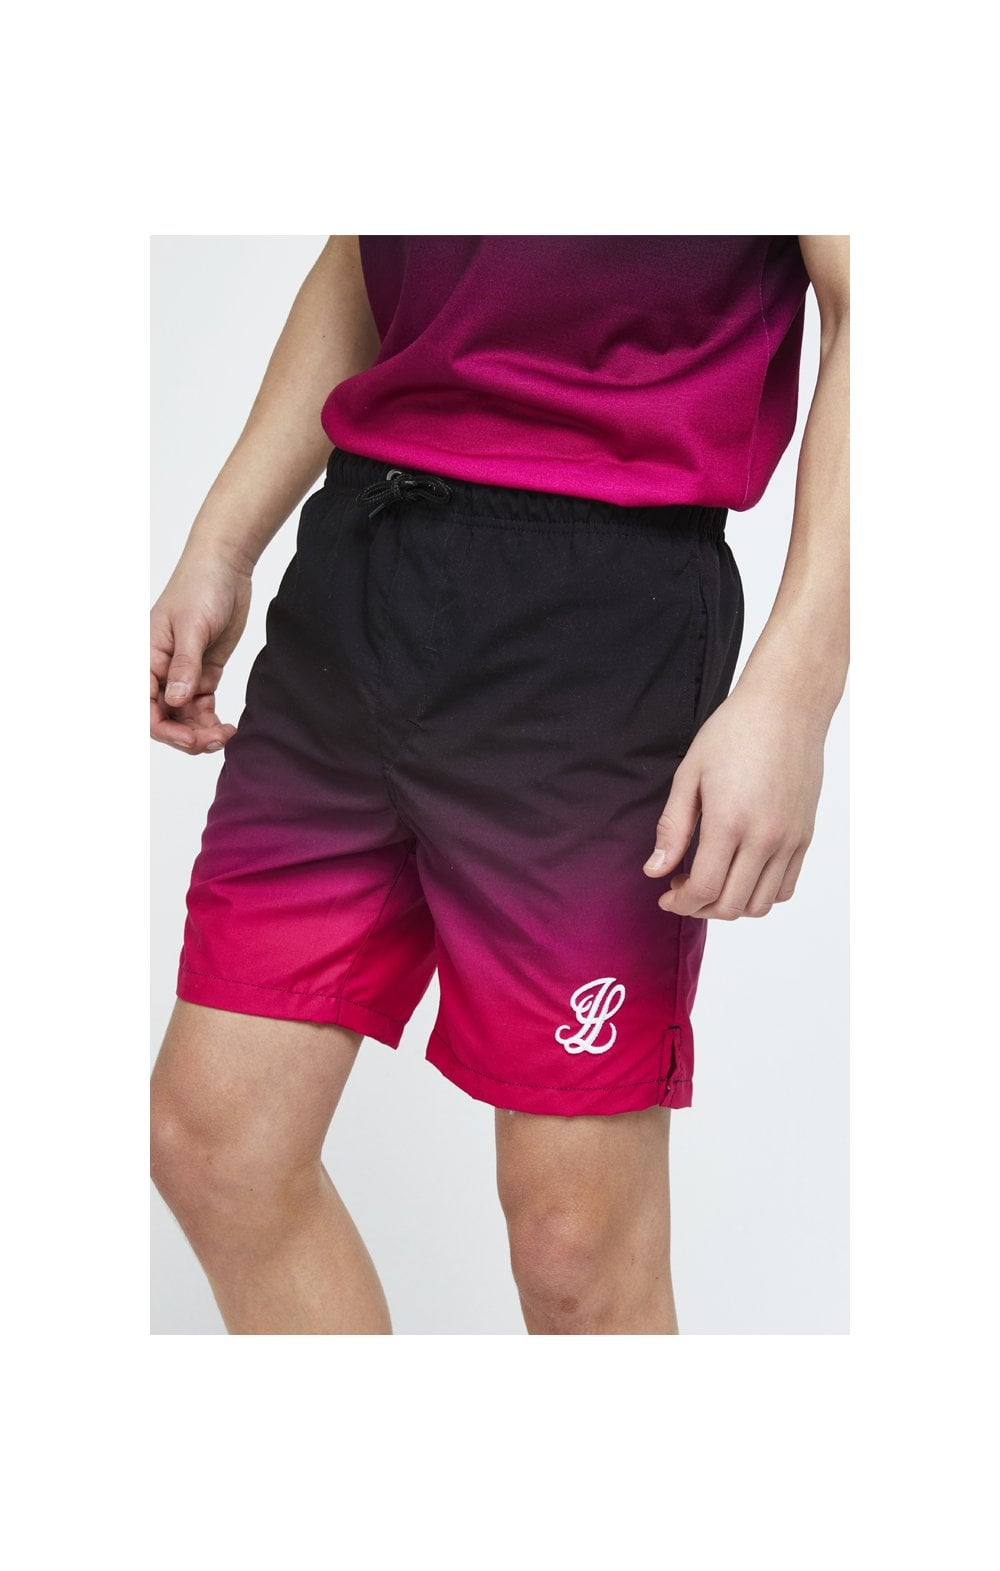 Illusive London Swim Shorts - Black & Pink (4)